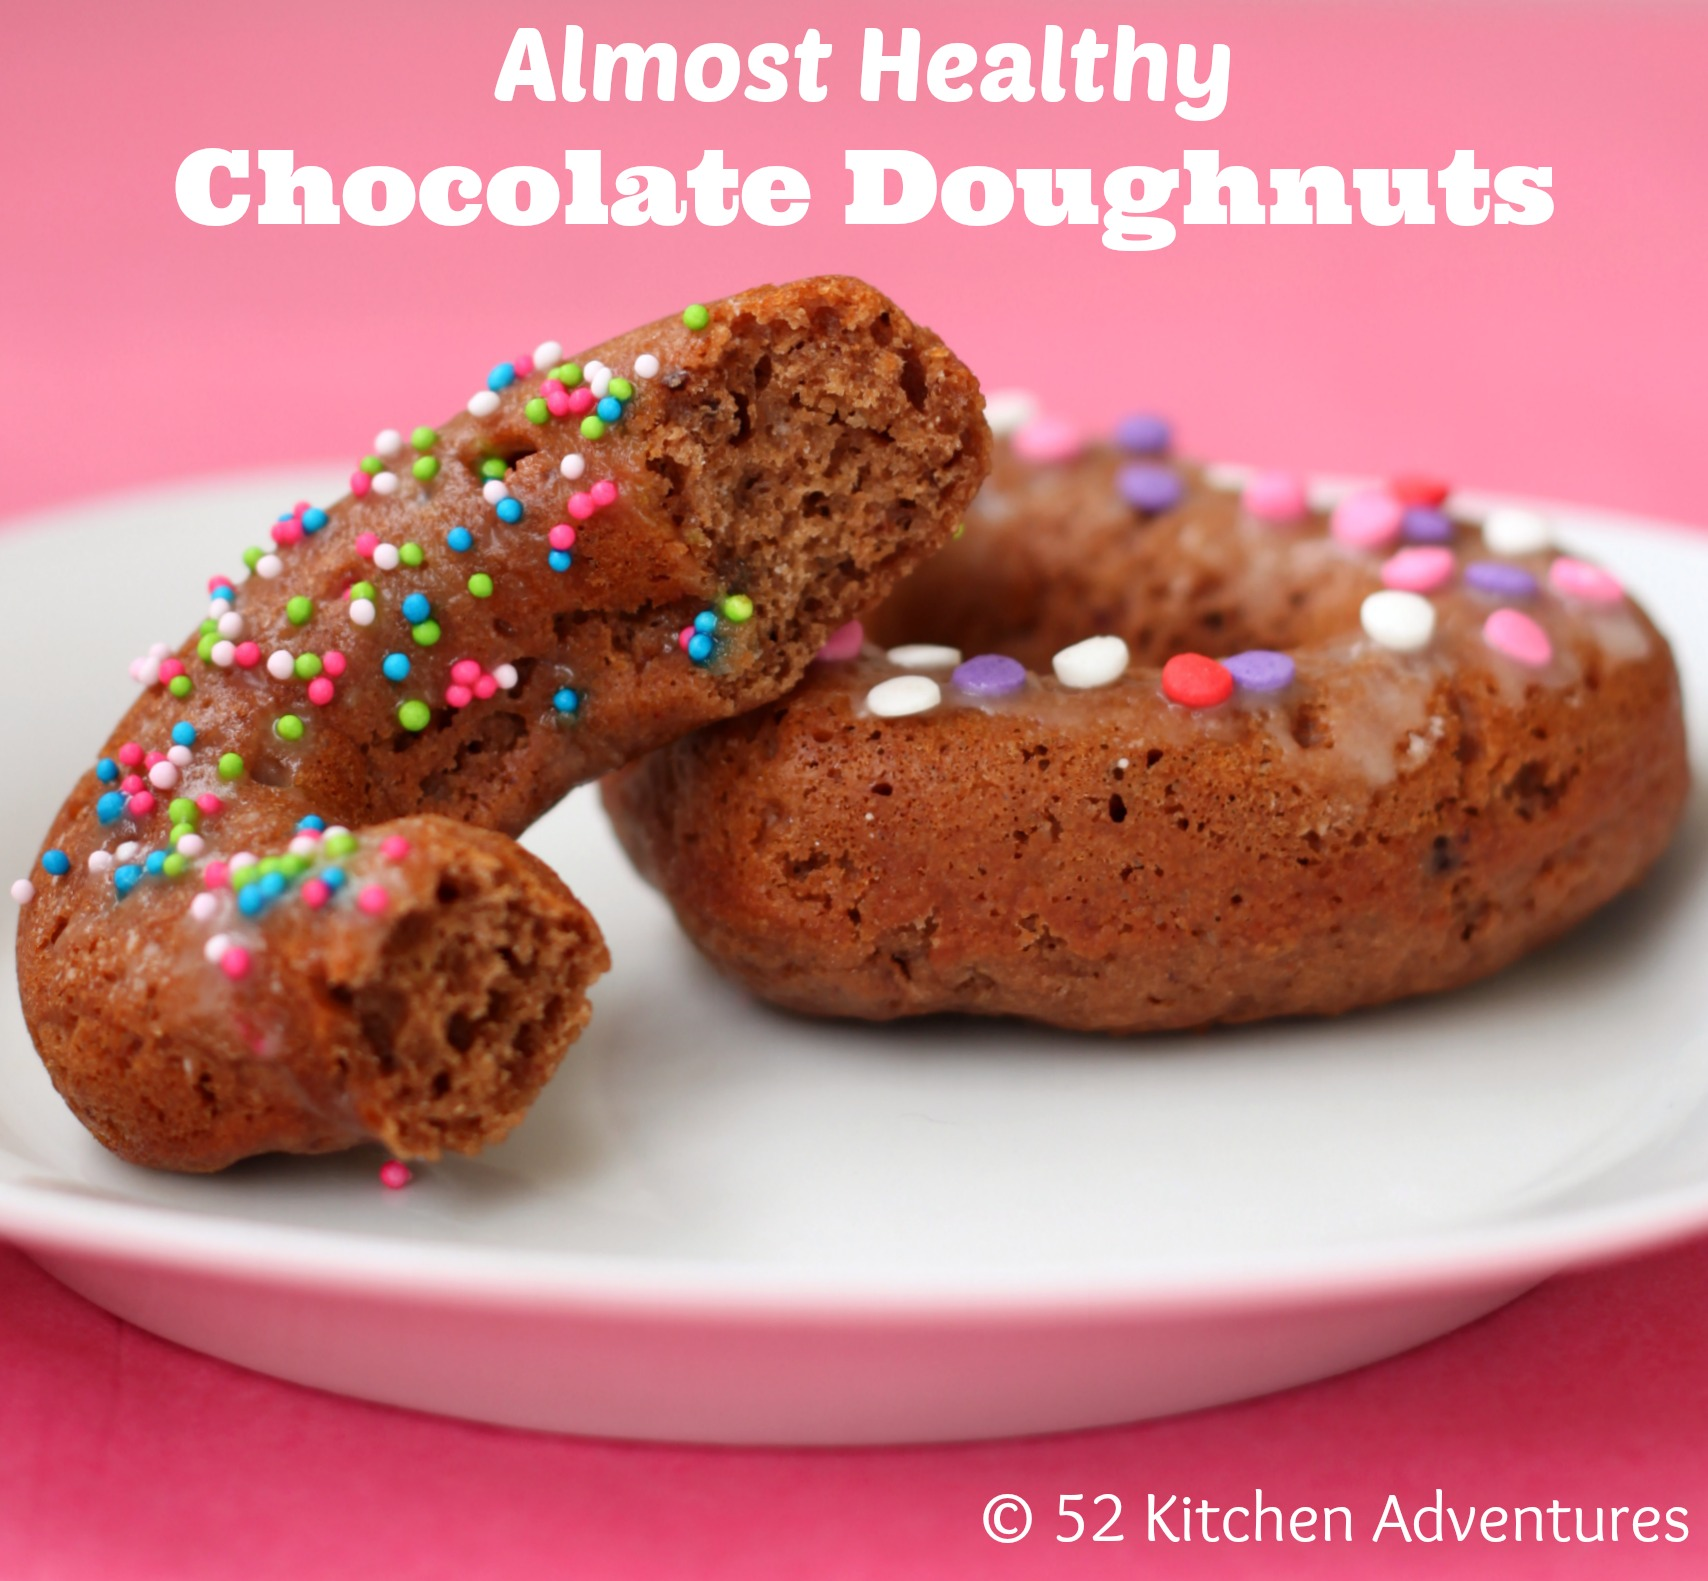 Almost Healthy Chocolate Doughnuts